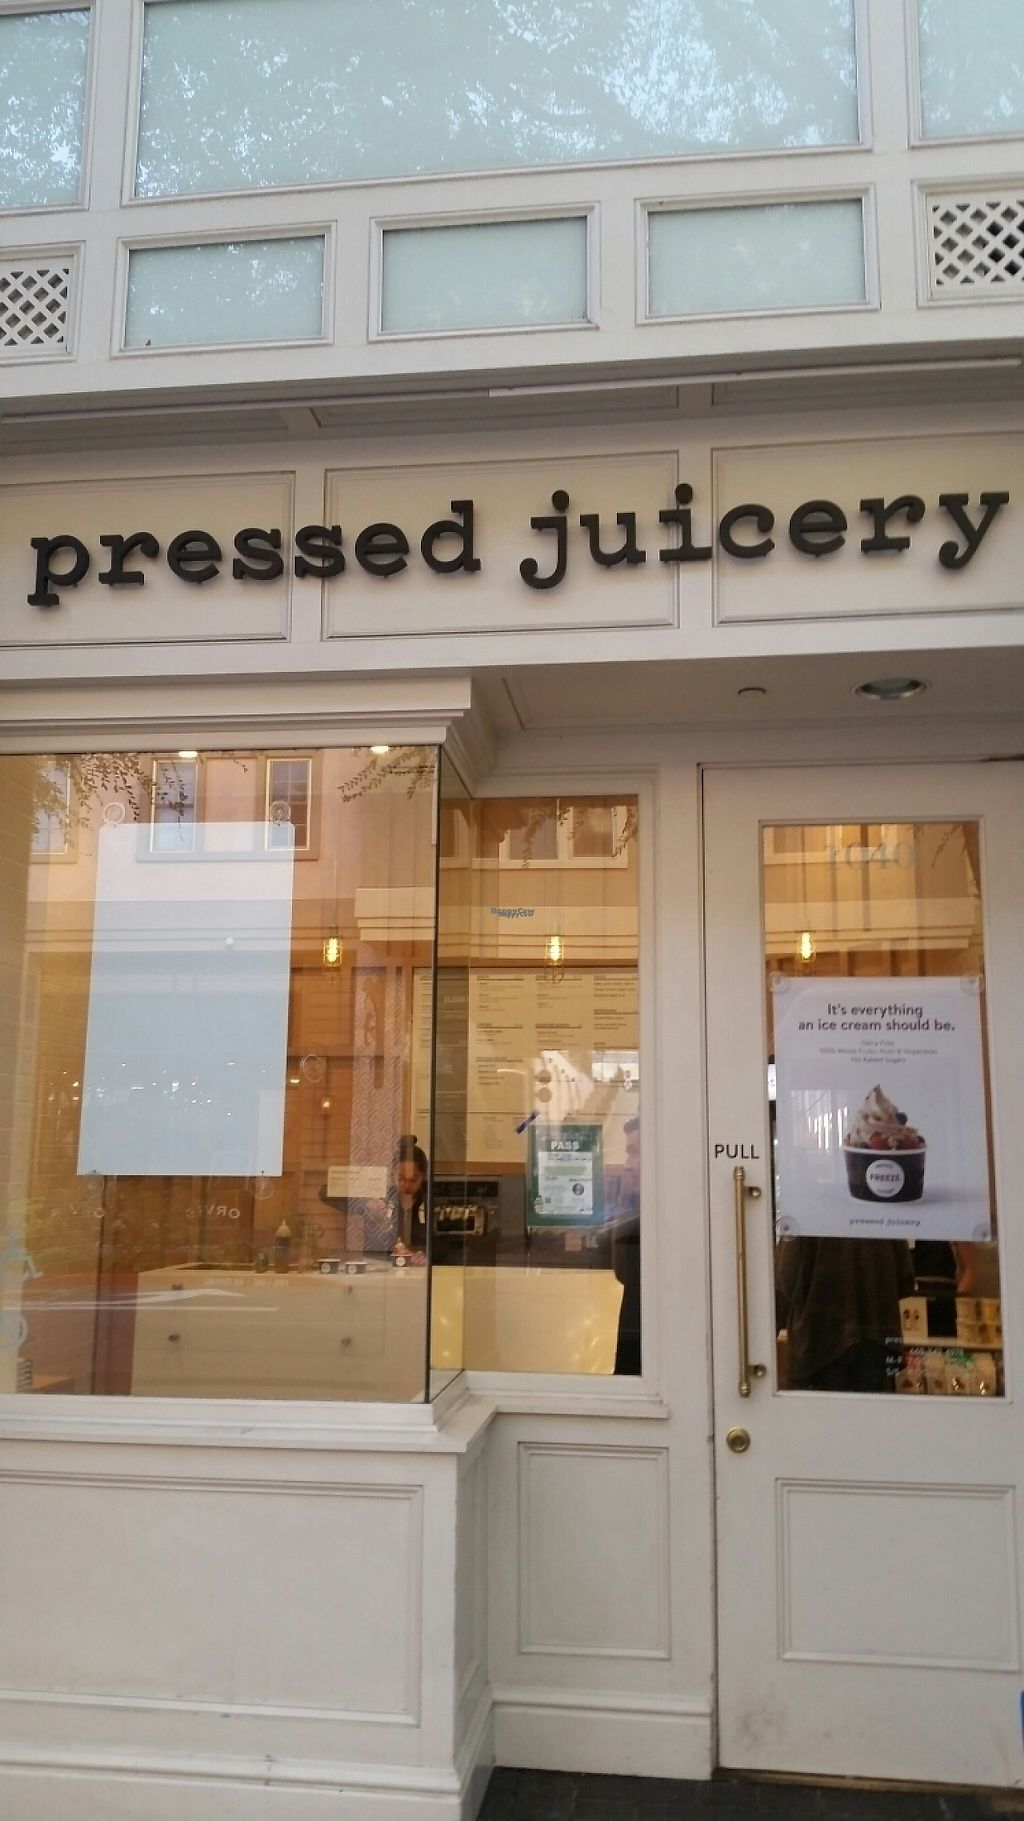 "Photo of Pressed Juicery  by <a href=""/members/profile/Conniemm"">Conniemm</a> <br/>outside <br/> December 2, 2016  - <a href='/contact/abuse/image/83503/196500'>Report</a>"